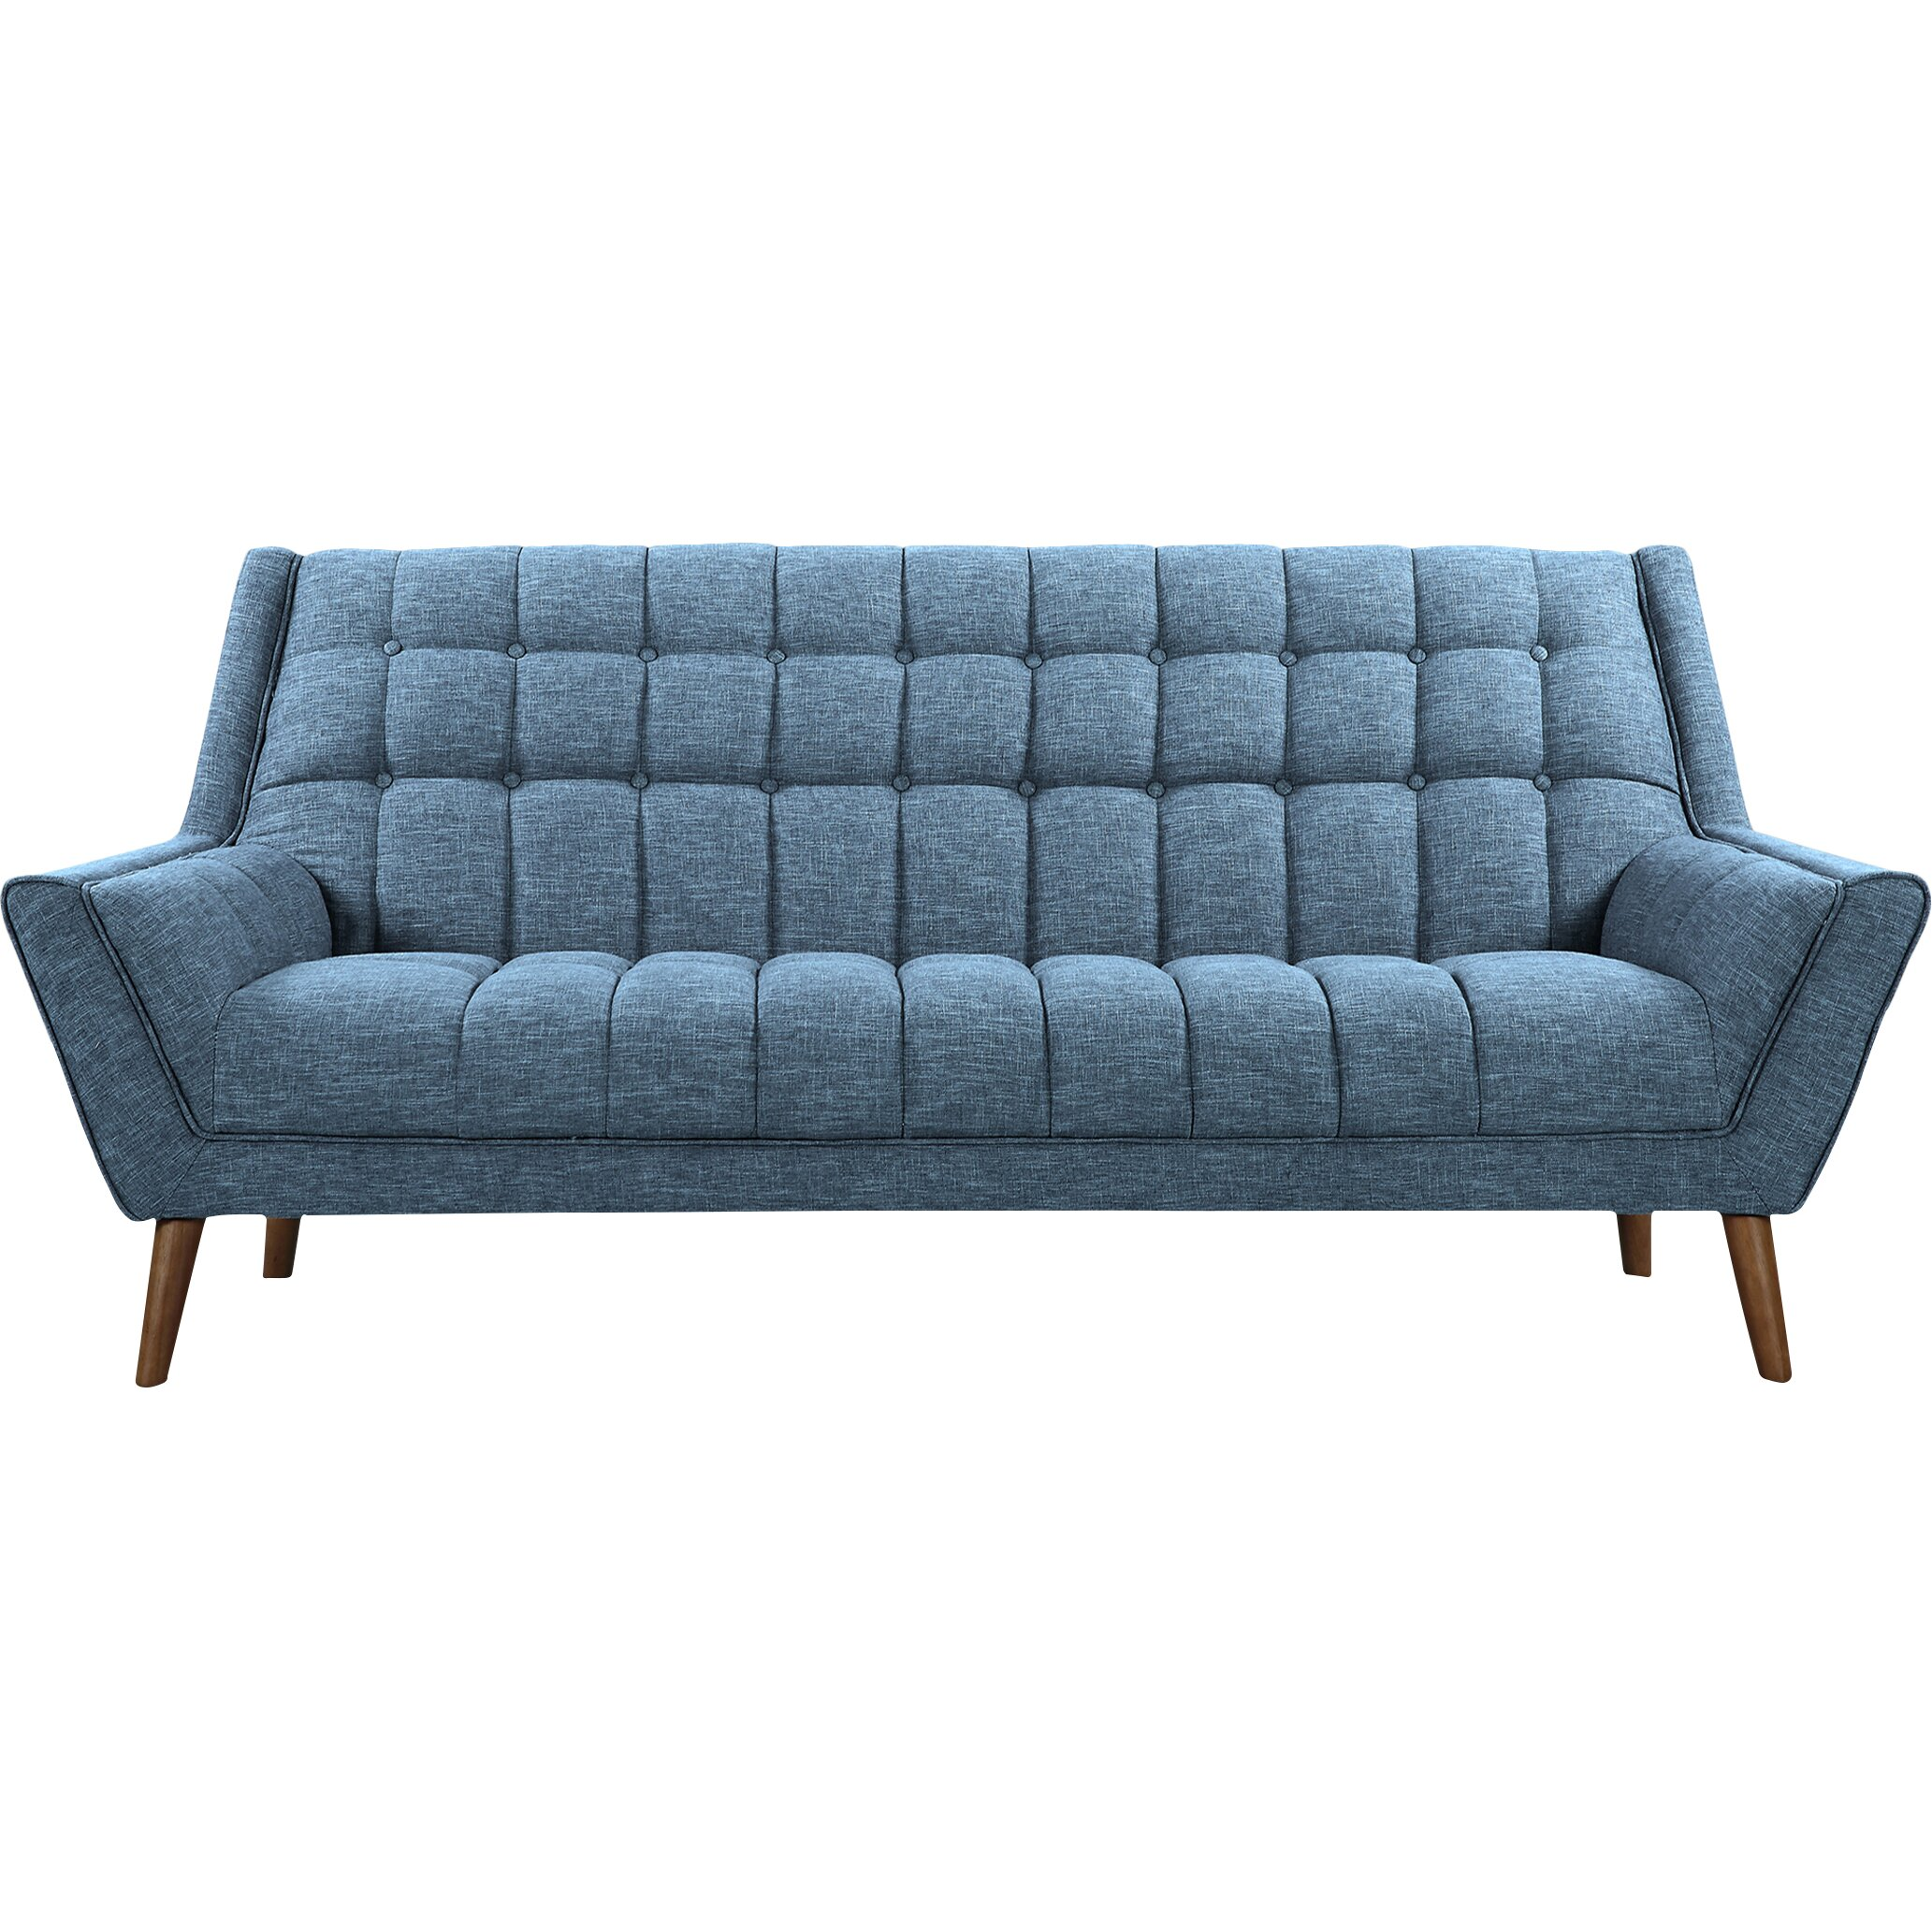 Mid century modern sofa home interior design for Modern love seats